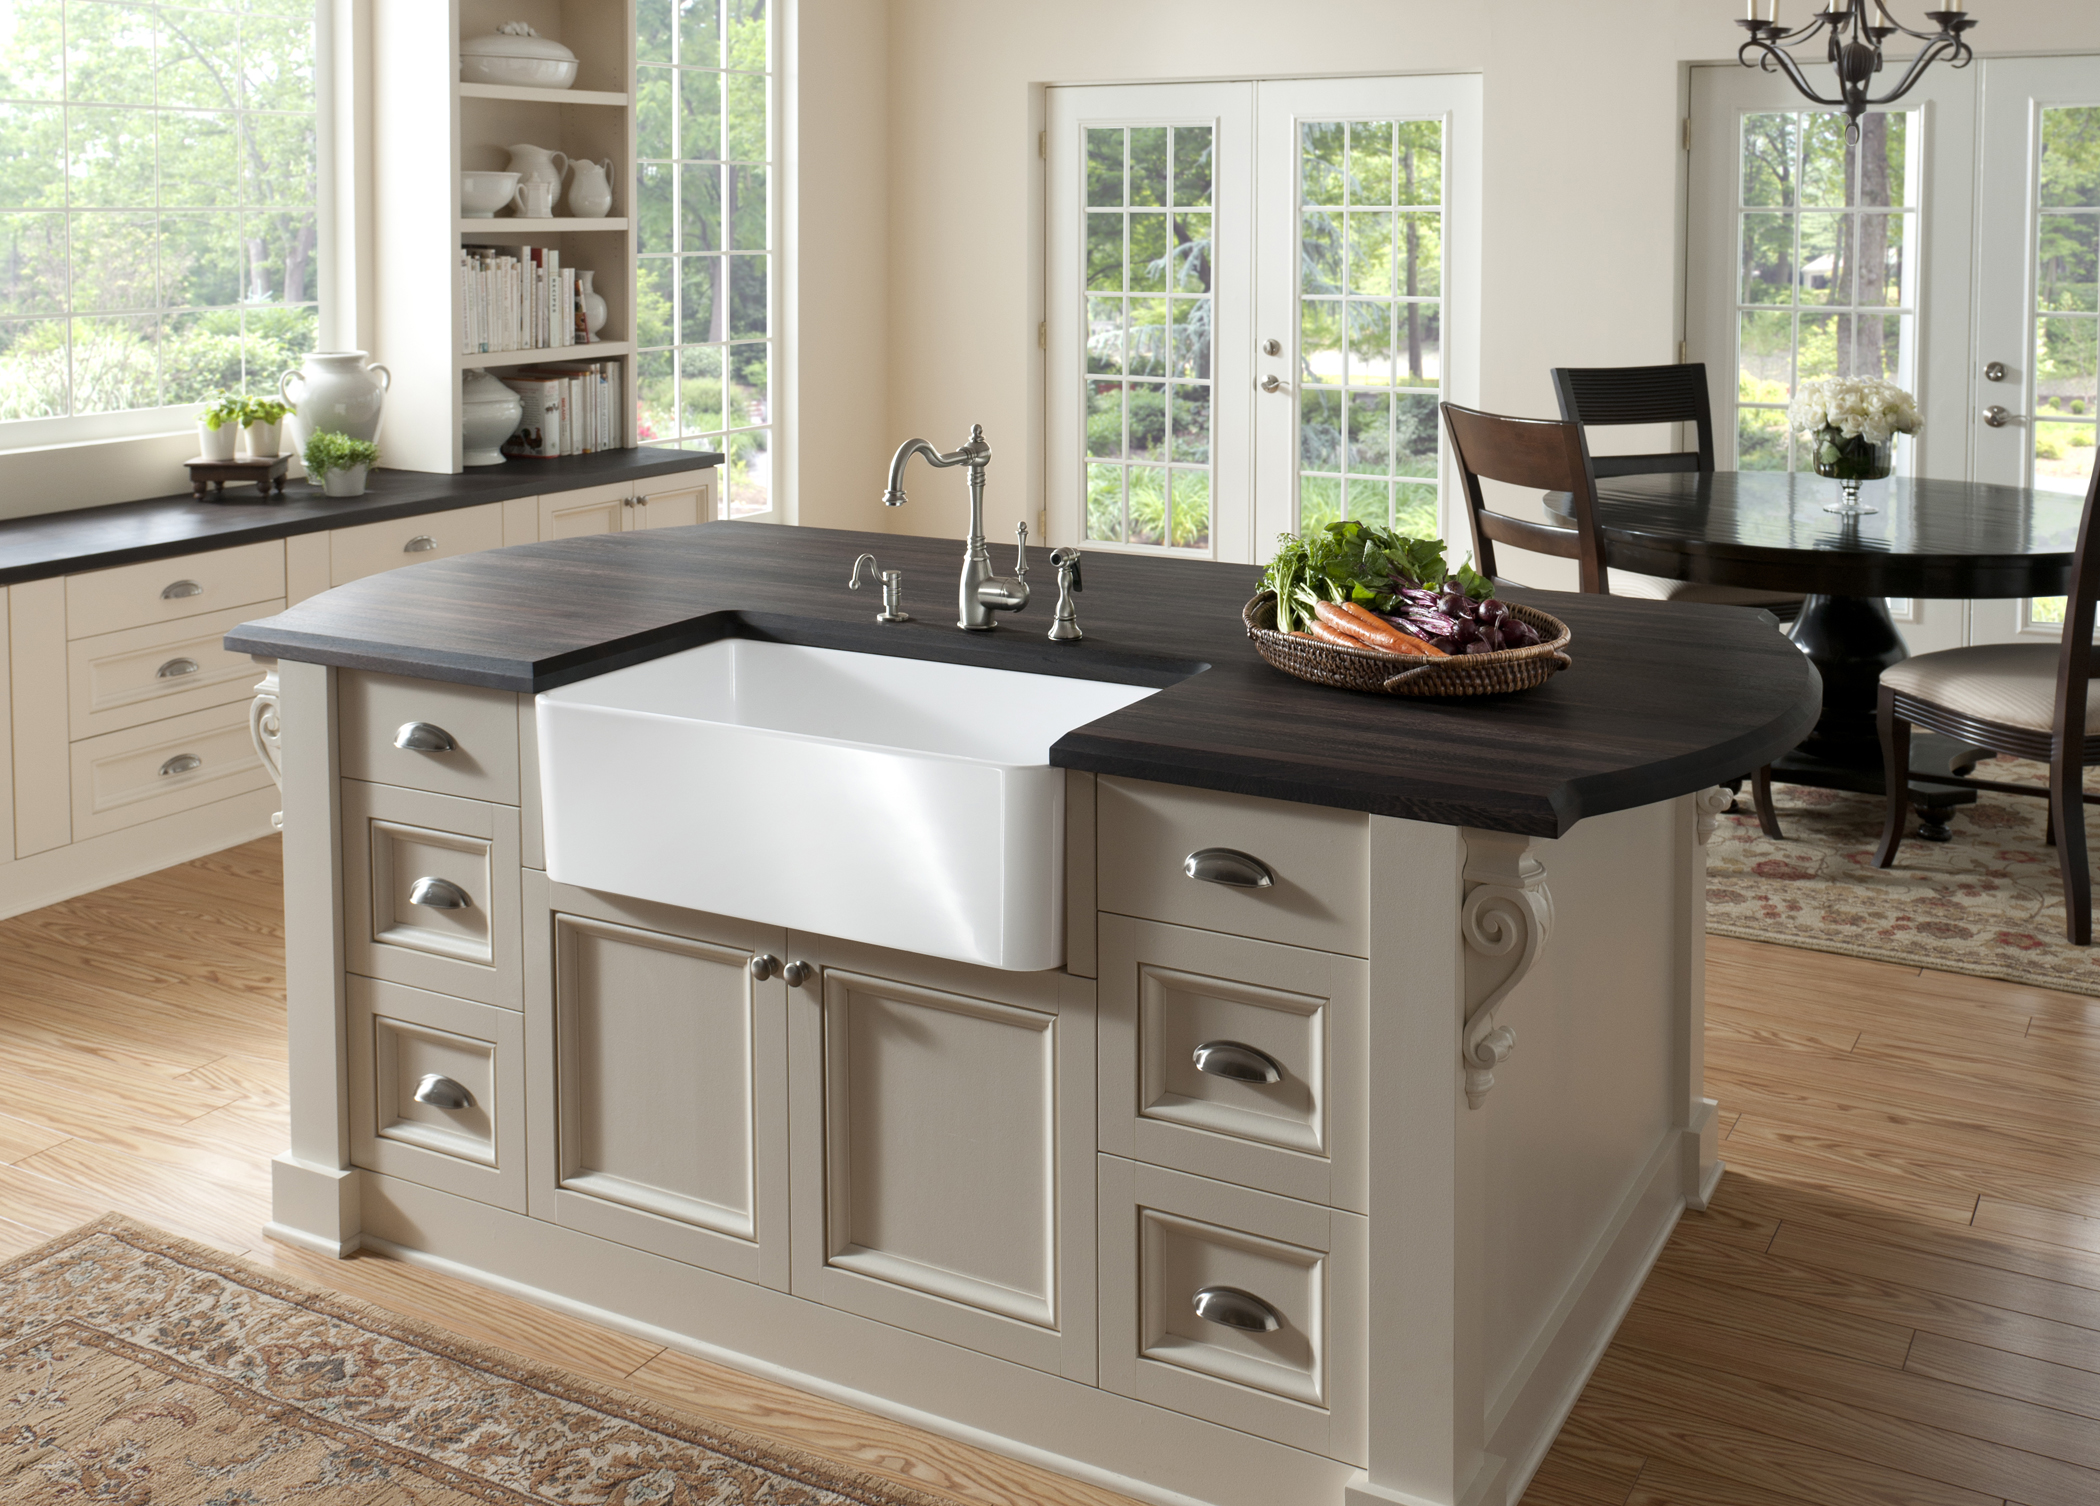 BLANCO Introduces The CERANA Apron Front Kitchen Sink